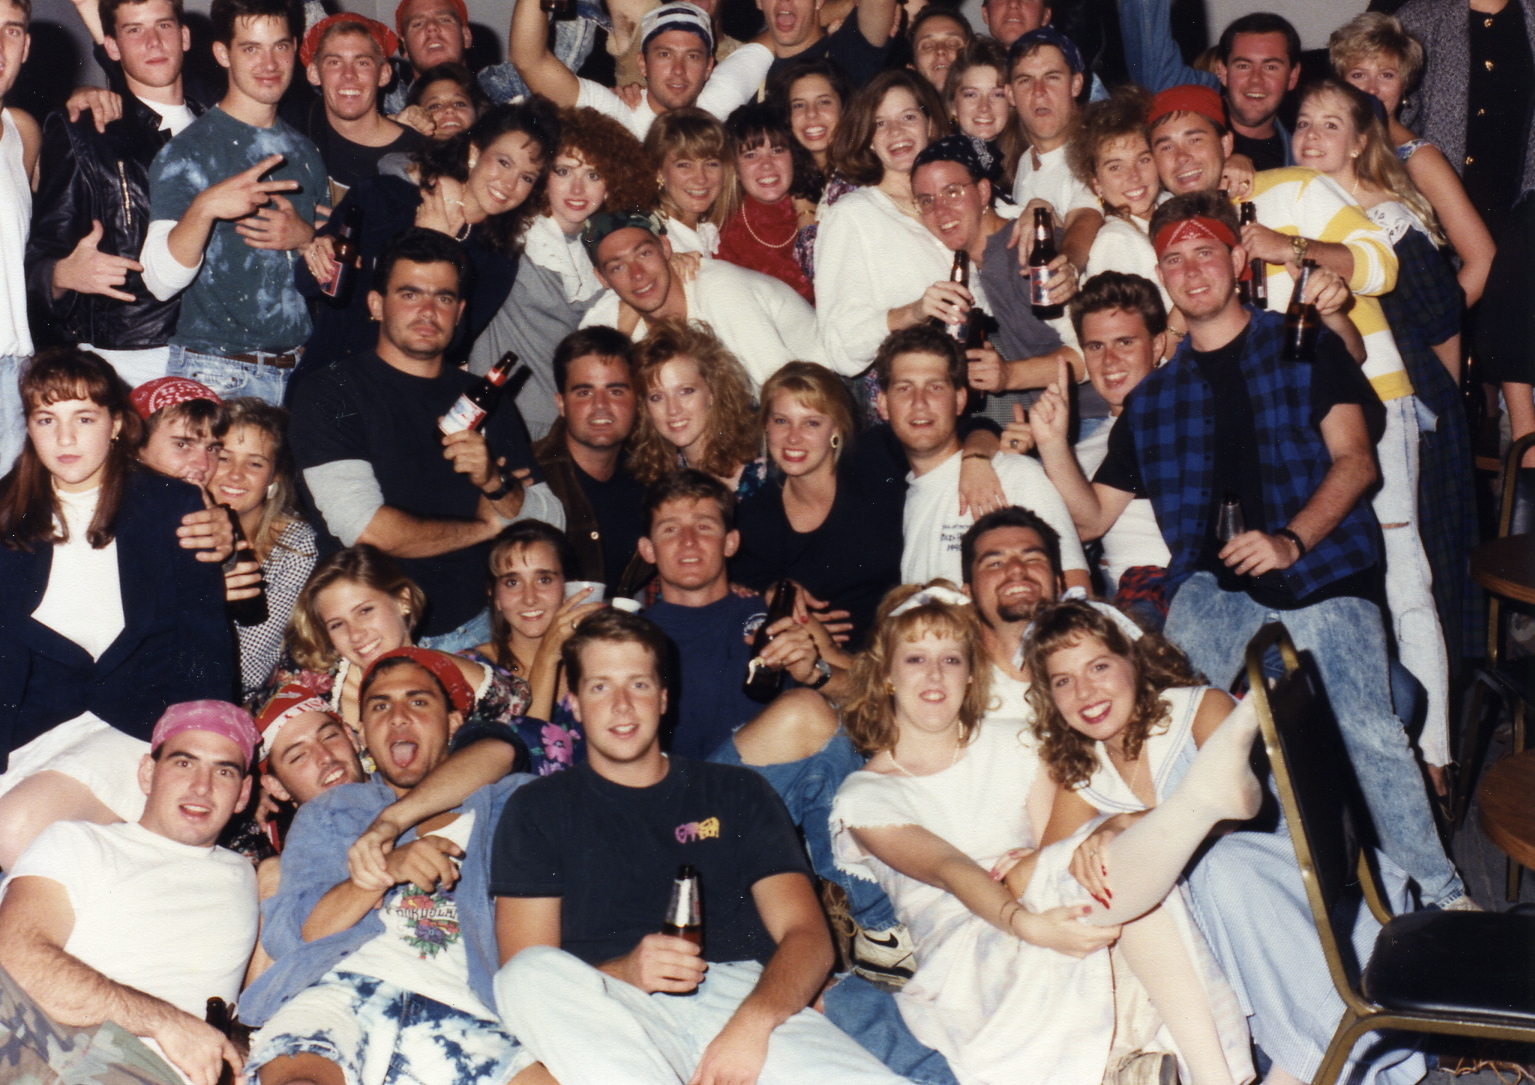 1991 PaddyMurphy group photo.jpg